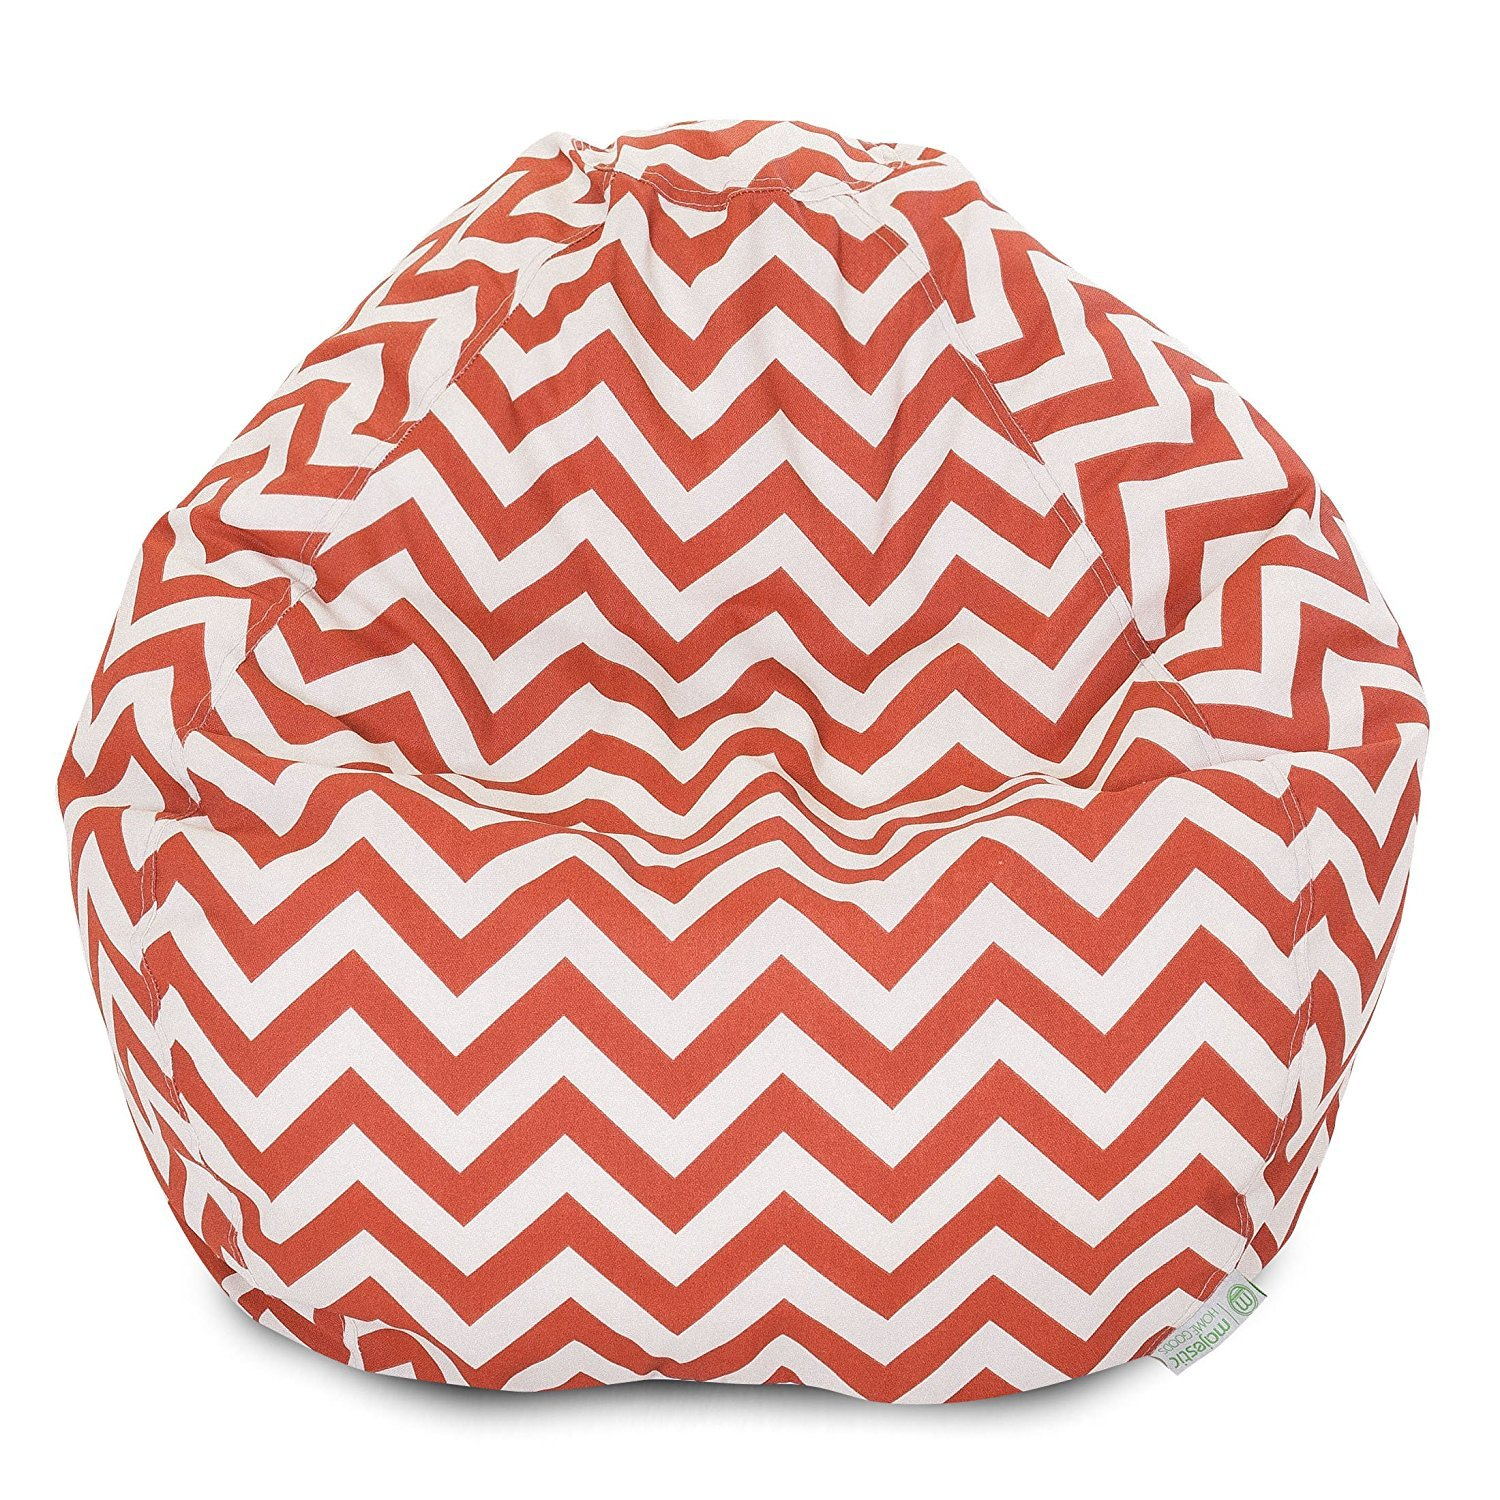 Majestic Home Goods Classic Bean Bag Chair - Chevron Giant Classic Bean Bags for Small Adults and Kids (28 x 28 x 22 Inches) (Burnt Orange